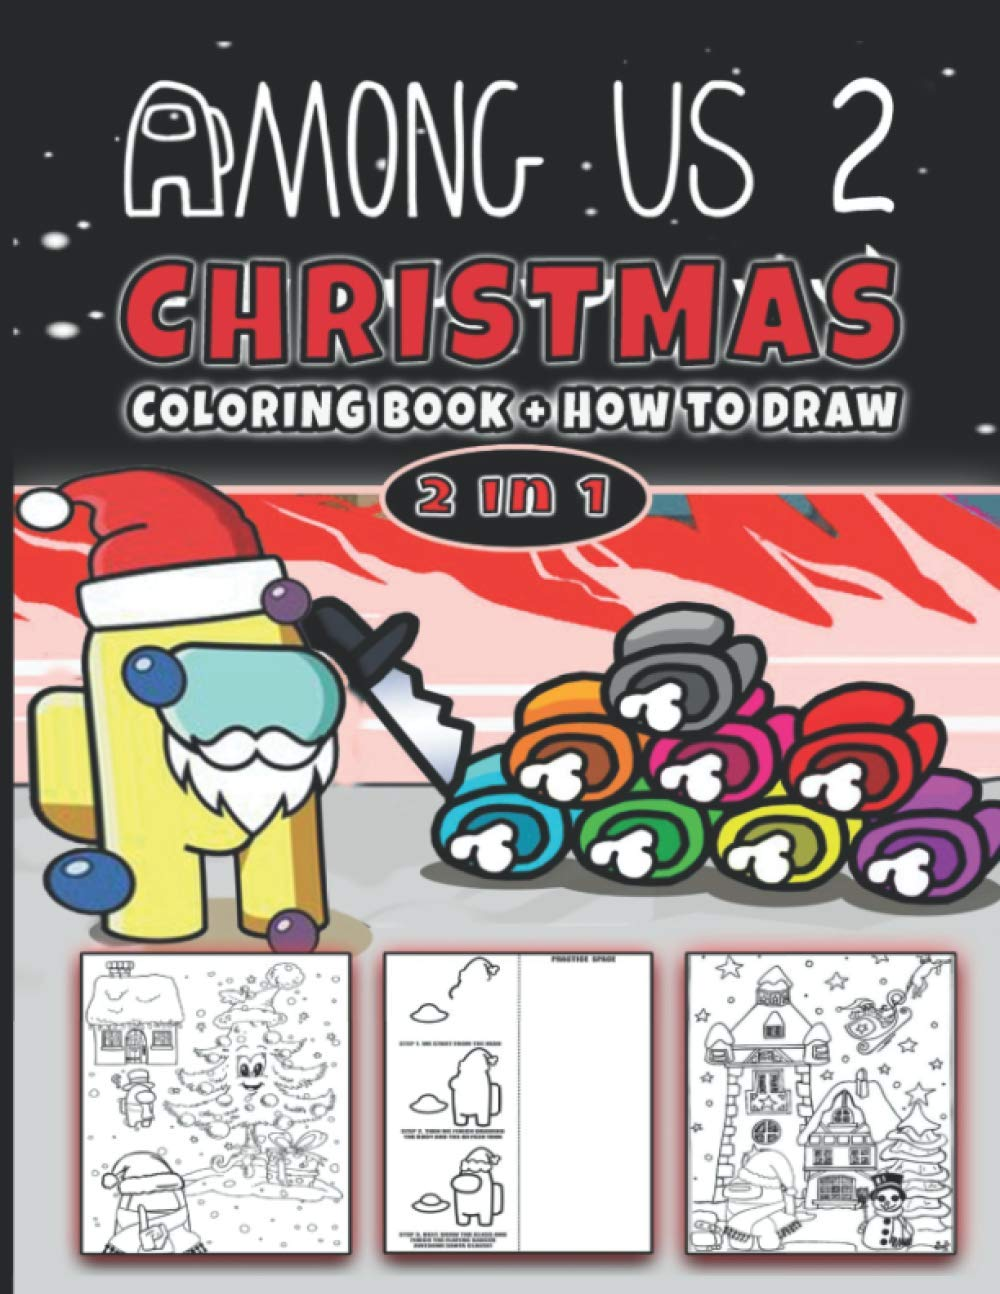 Among Us 2 Christmas Coloring Book How To Draw Two In One Draw And Color The Christmas Version Of Among Us Us 2 For Kids And Adults To Color Many To Relax And Relieve Stress Premium Quality Prints Awadalah 9798569720651